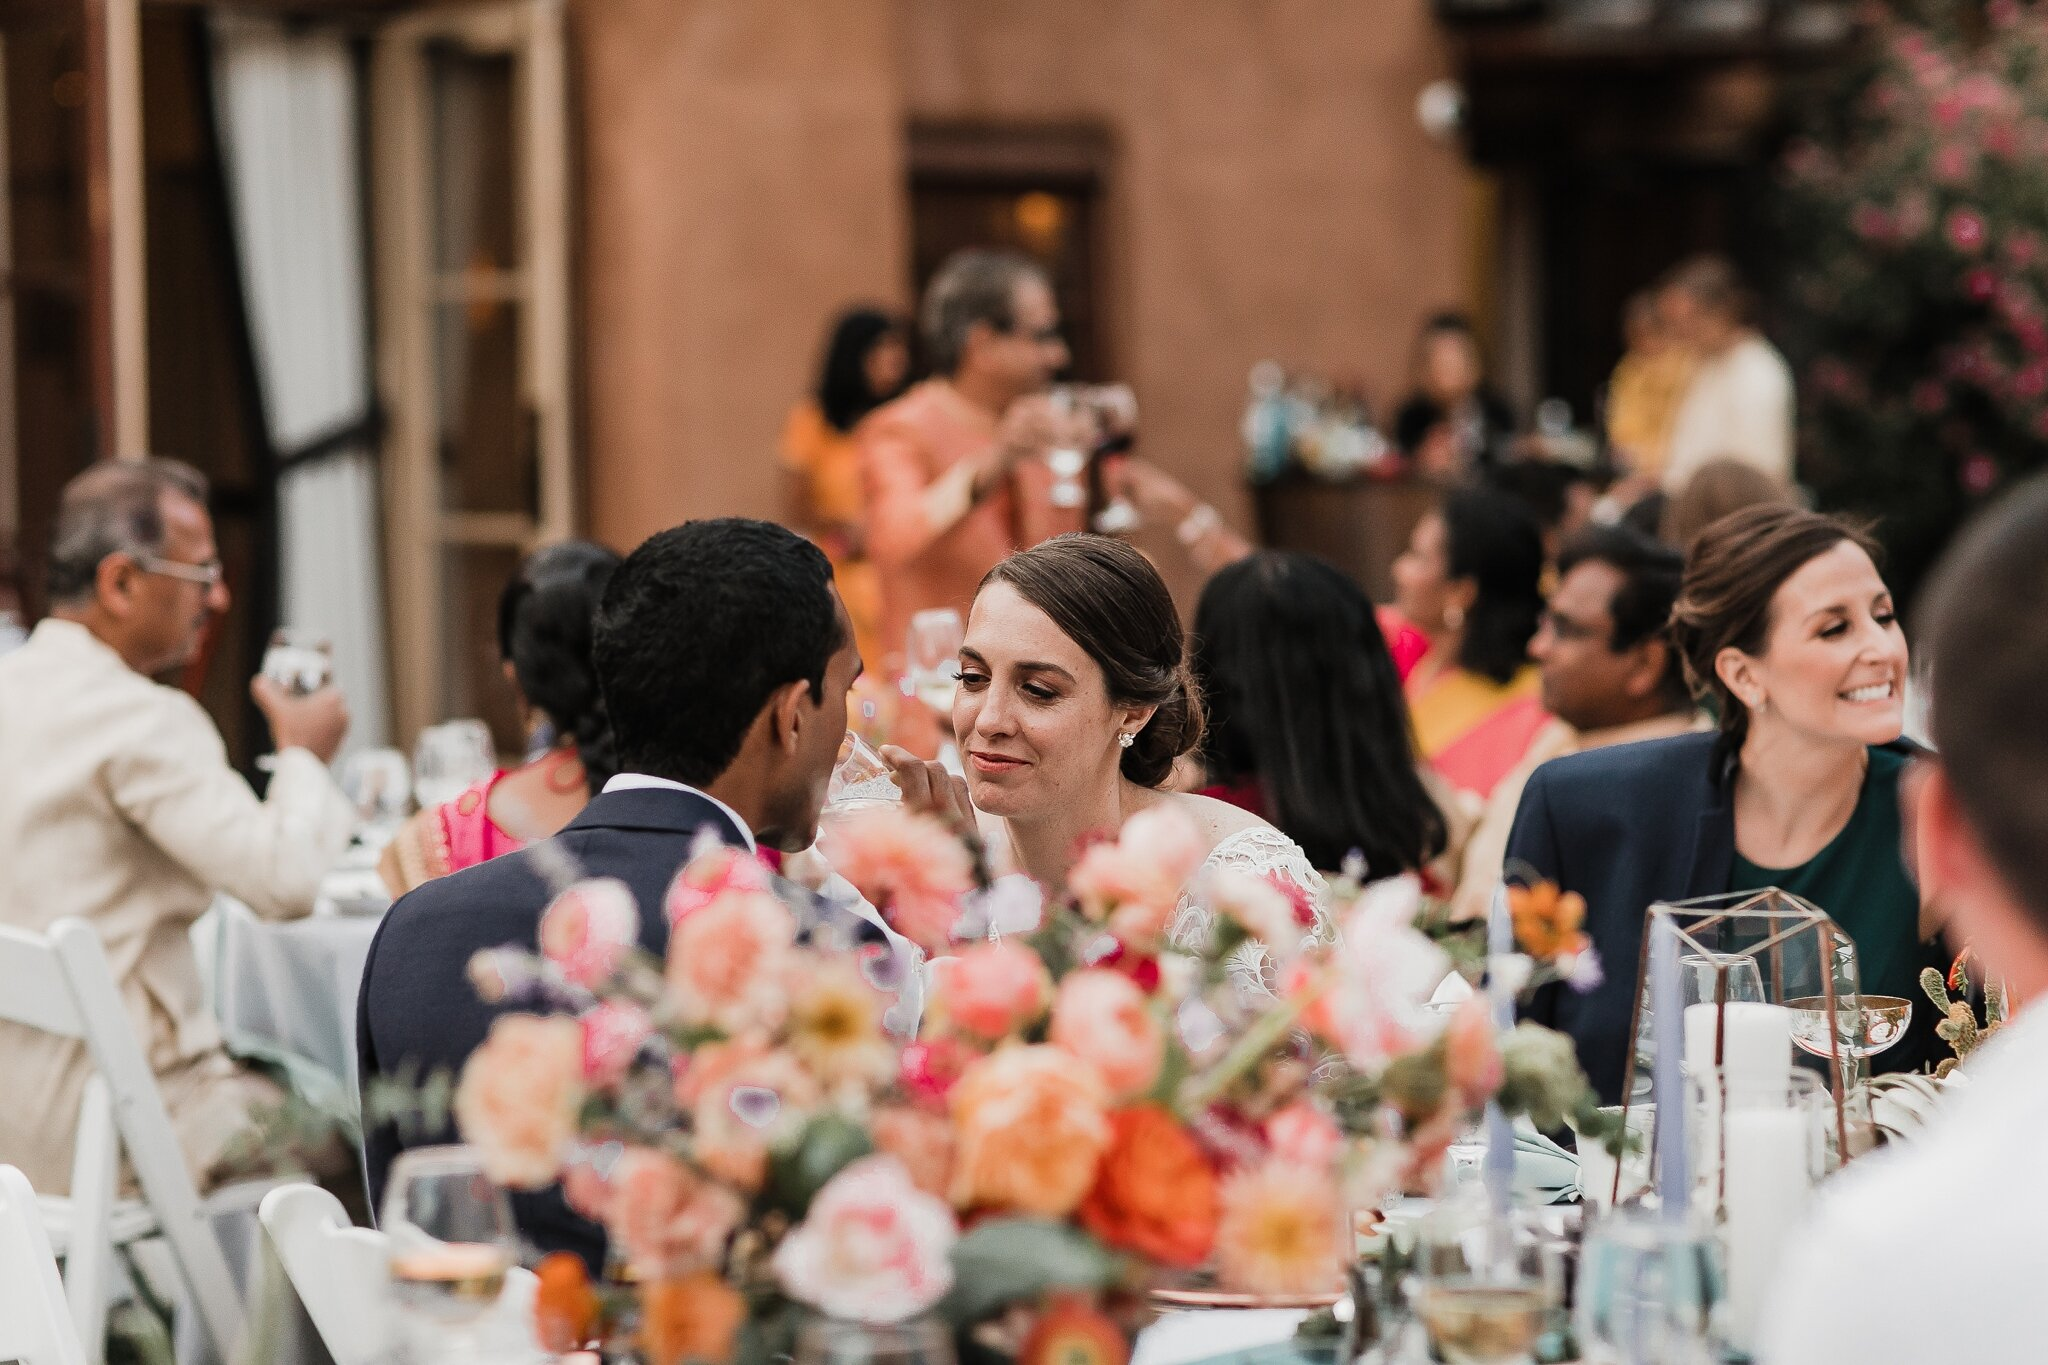 Alicia+lucia+photography+-+albuquerque+wedding+photographer+-+santa+fe+wedding+photography+-+new+mexico+wedding+photographer+-+new+mexico+wedding+-+hindu+wedding+-+catholic+wedding+-+multicultural+wedding+-+santa+fe+wedding_0128.jpg